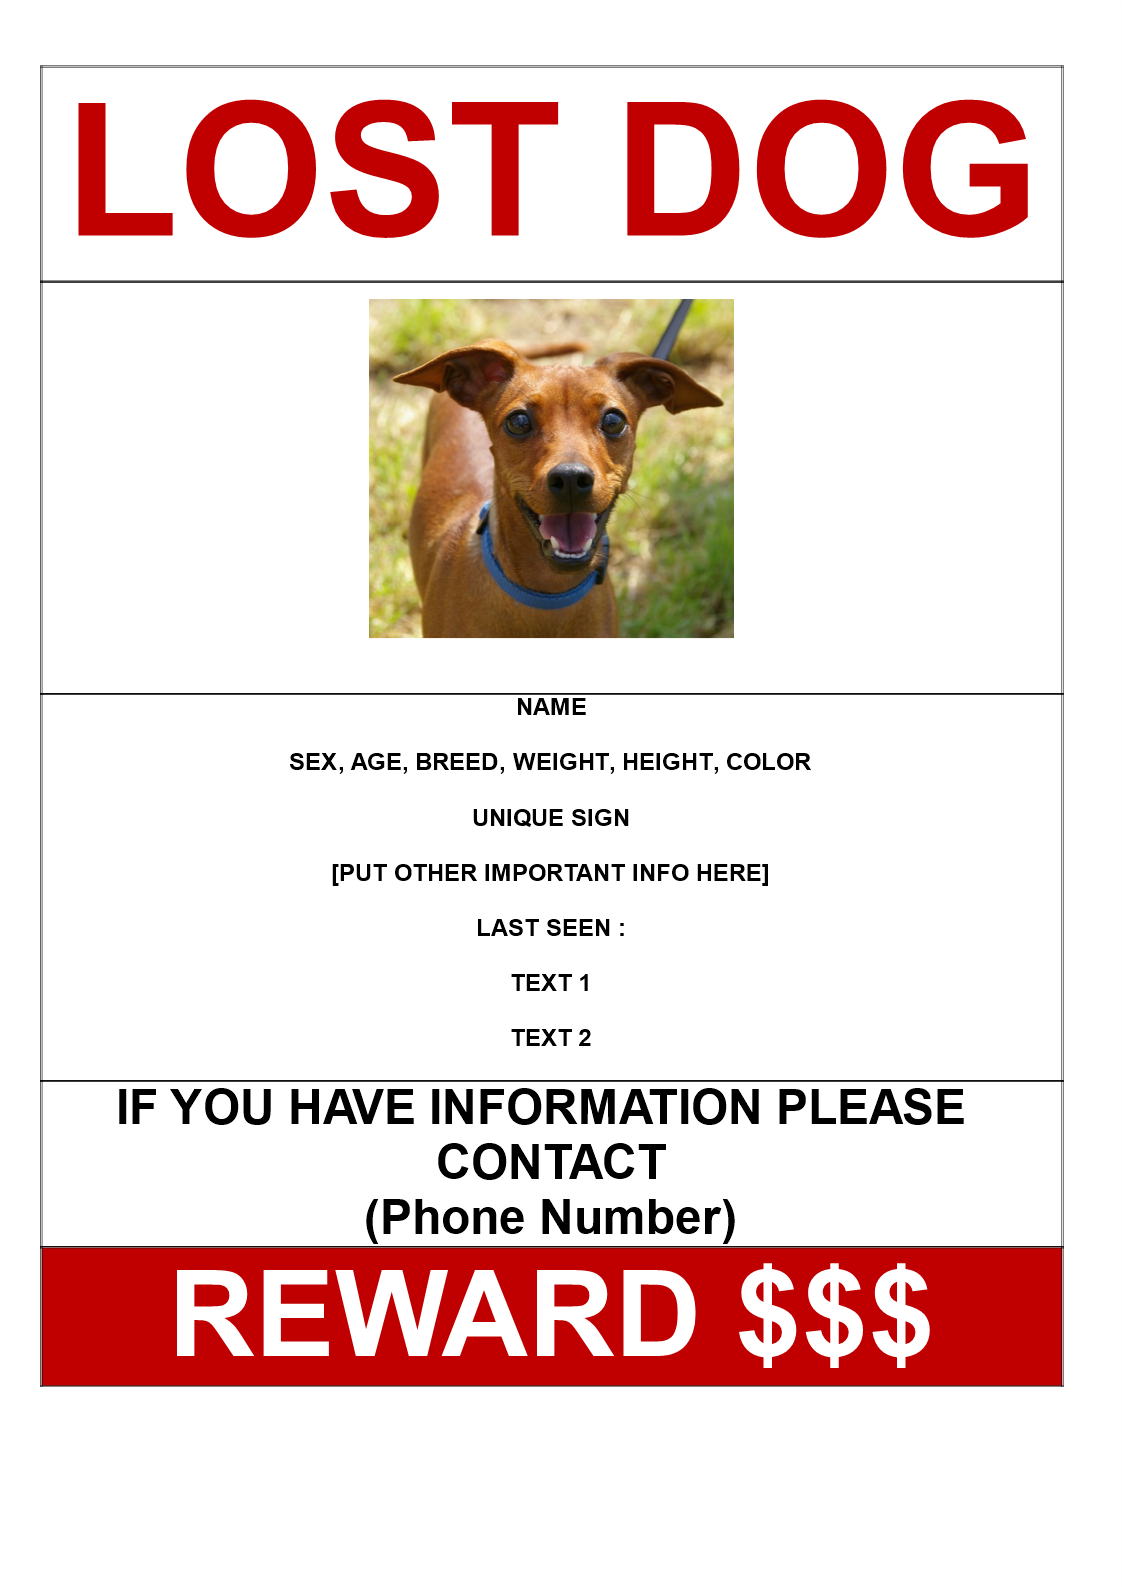 Missing Dog Poster With Reward A3 Size Main Image Download Template  Missing Reward Poster Template